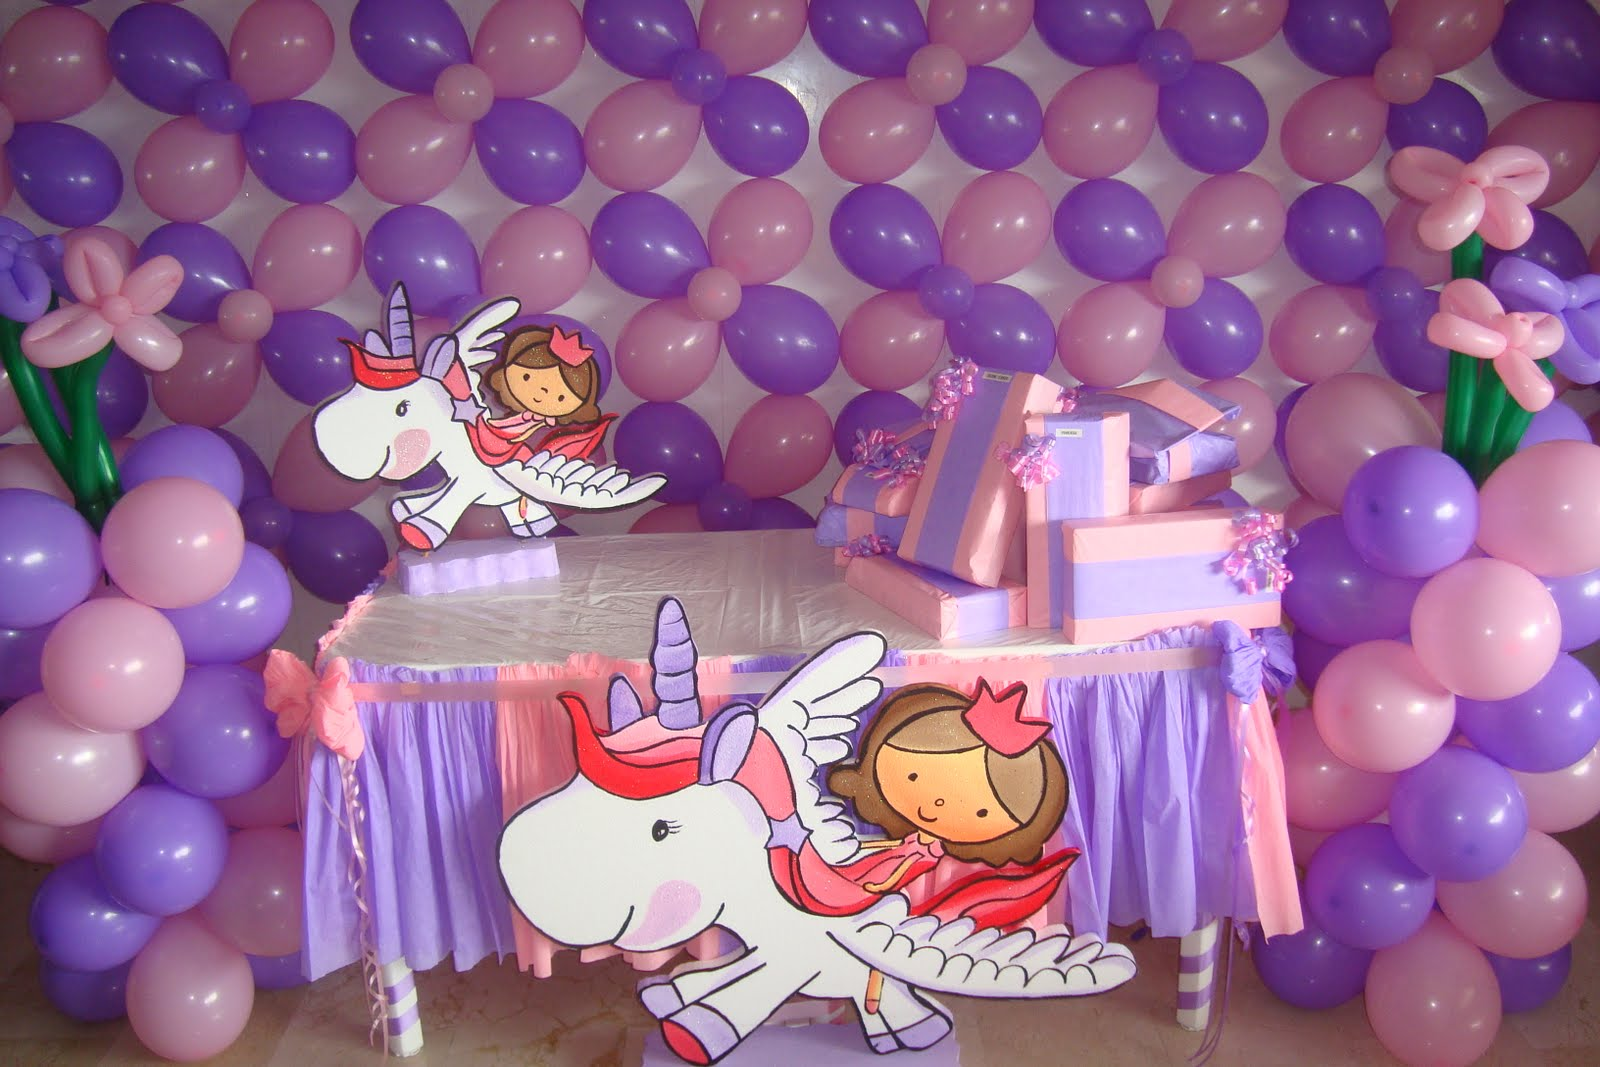 Decoracion De Fiestas Of Decoracion Fiesta Princesa Ni A Decoraci N Fiestas